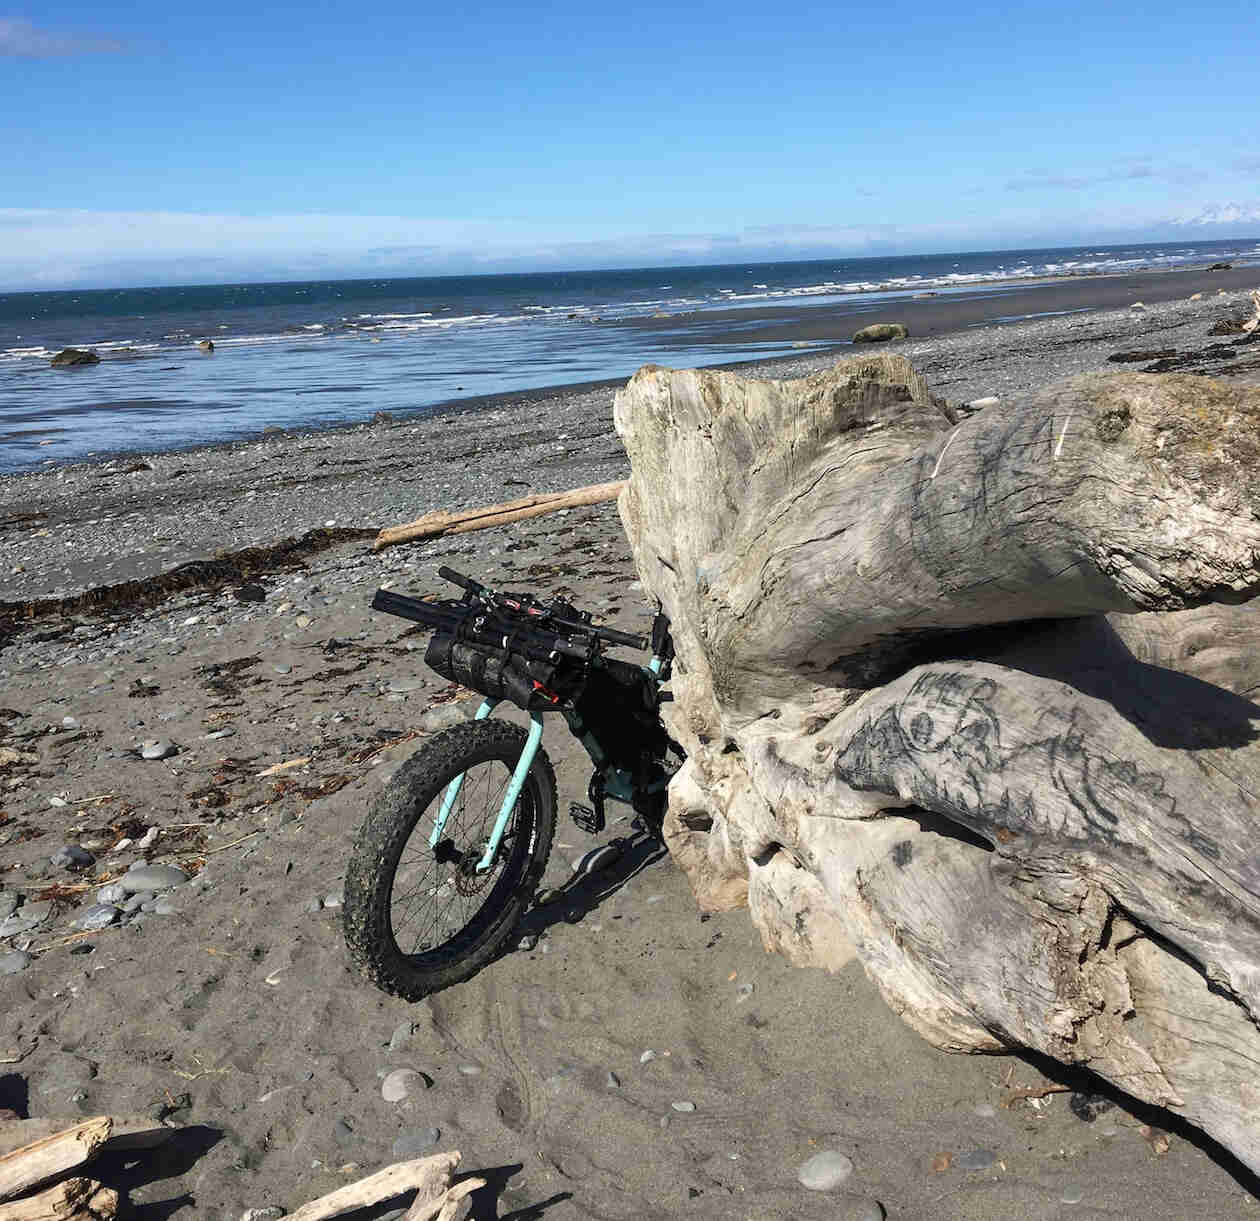 The front of a Surly fat bike sticks out from behind a large log, on a seashore, with water in the background